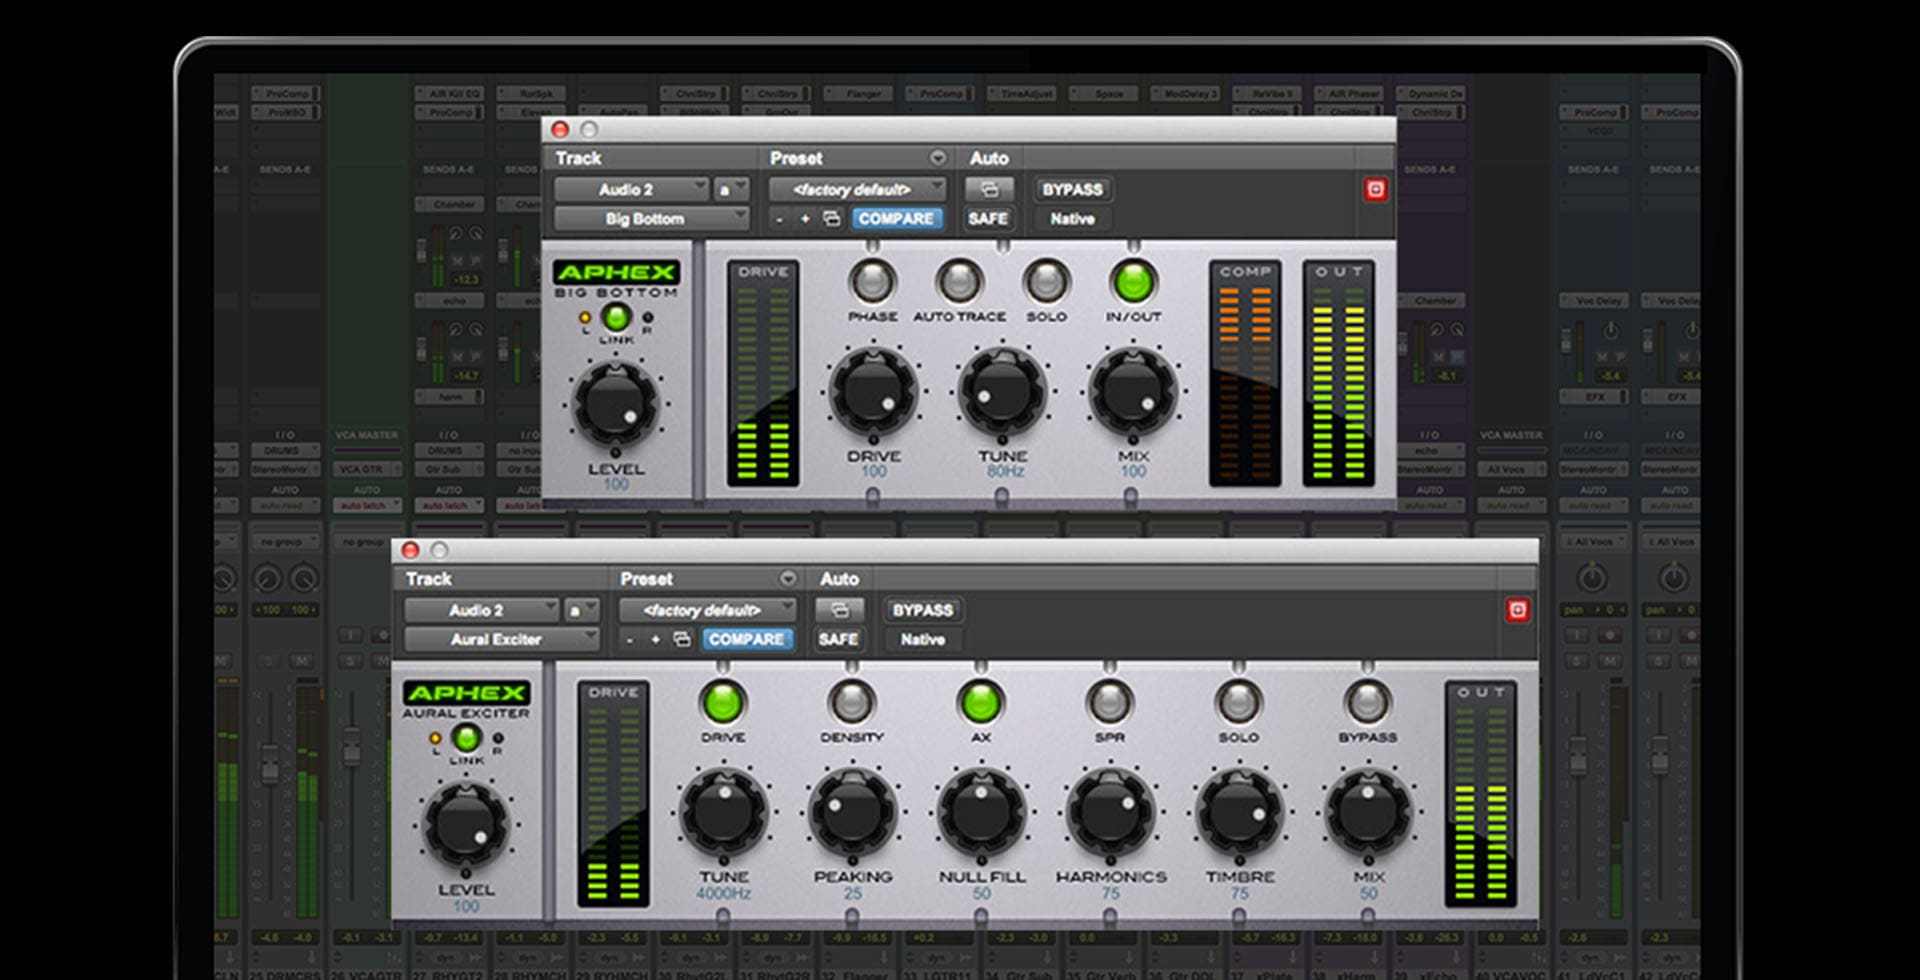 Laptop screen showing Aural Exciter and Big Bottom Pro plugin